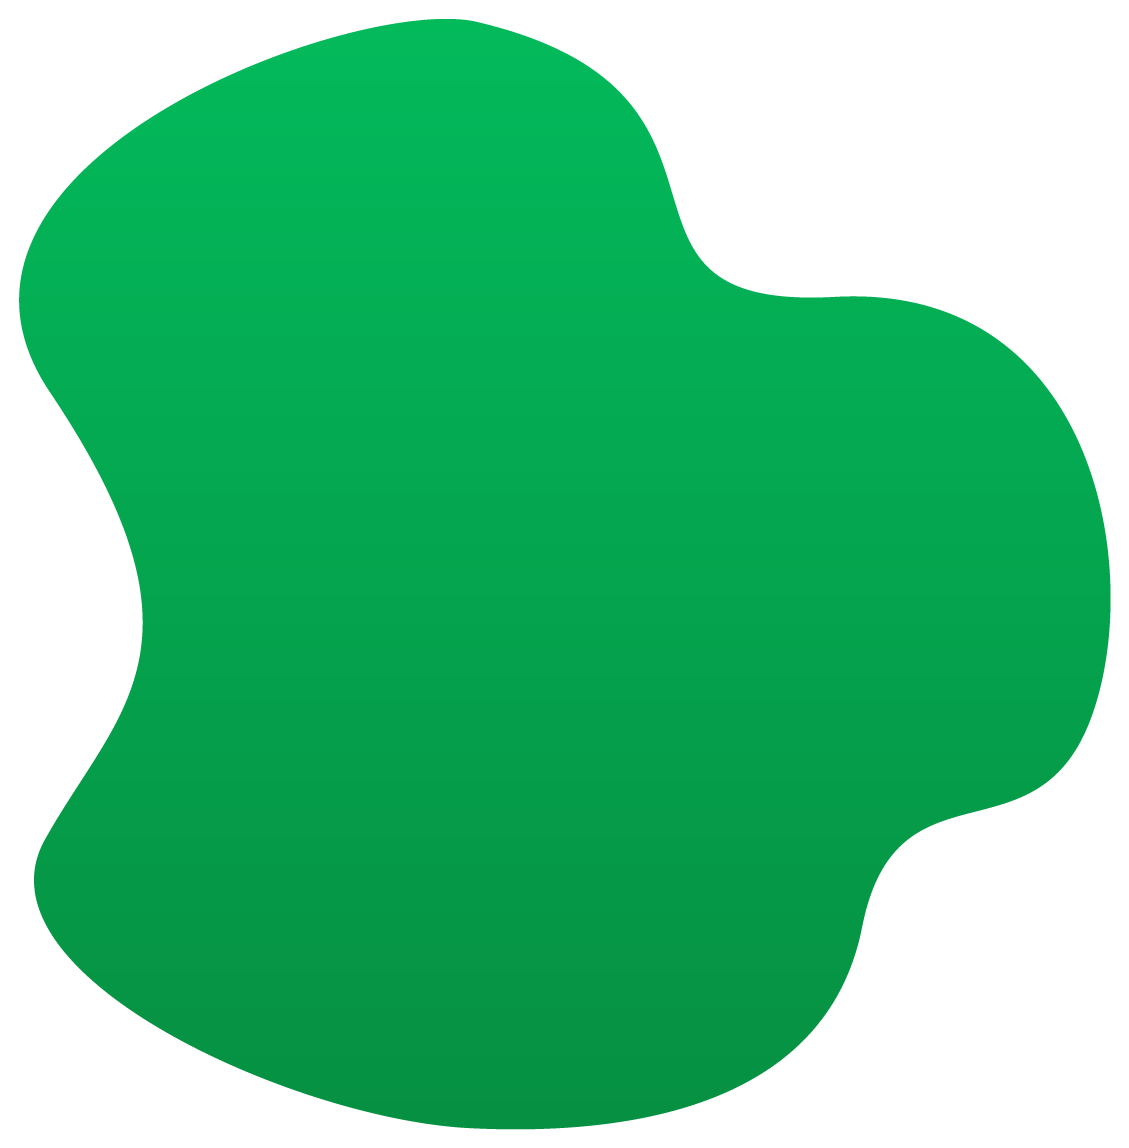 A green blob image used in backgrounds